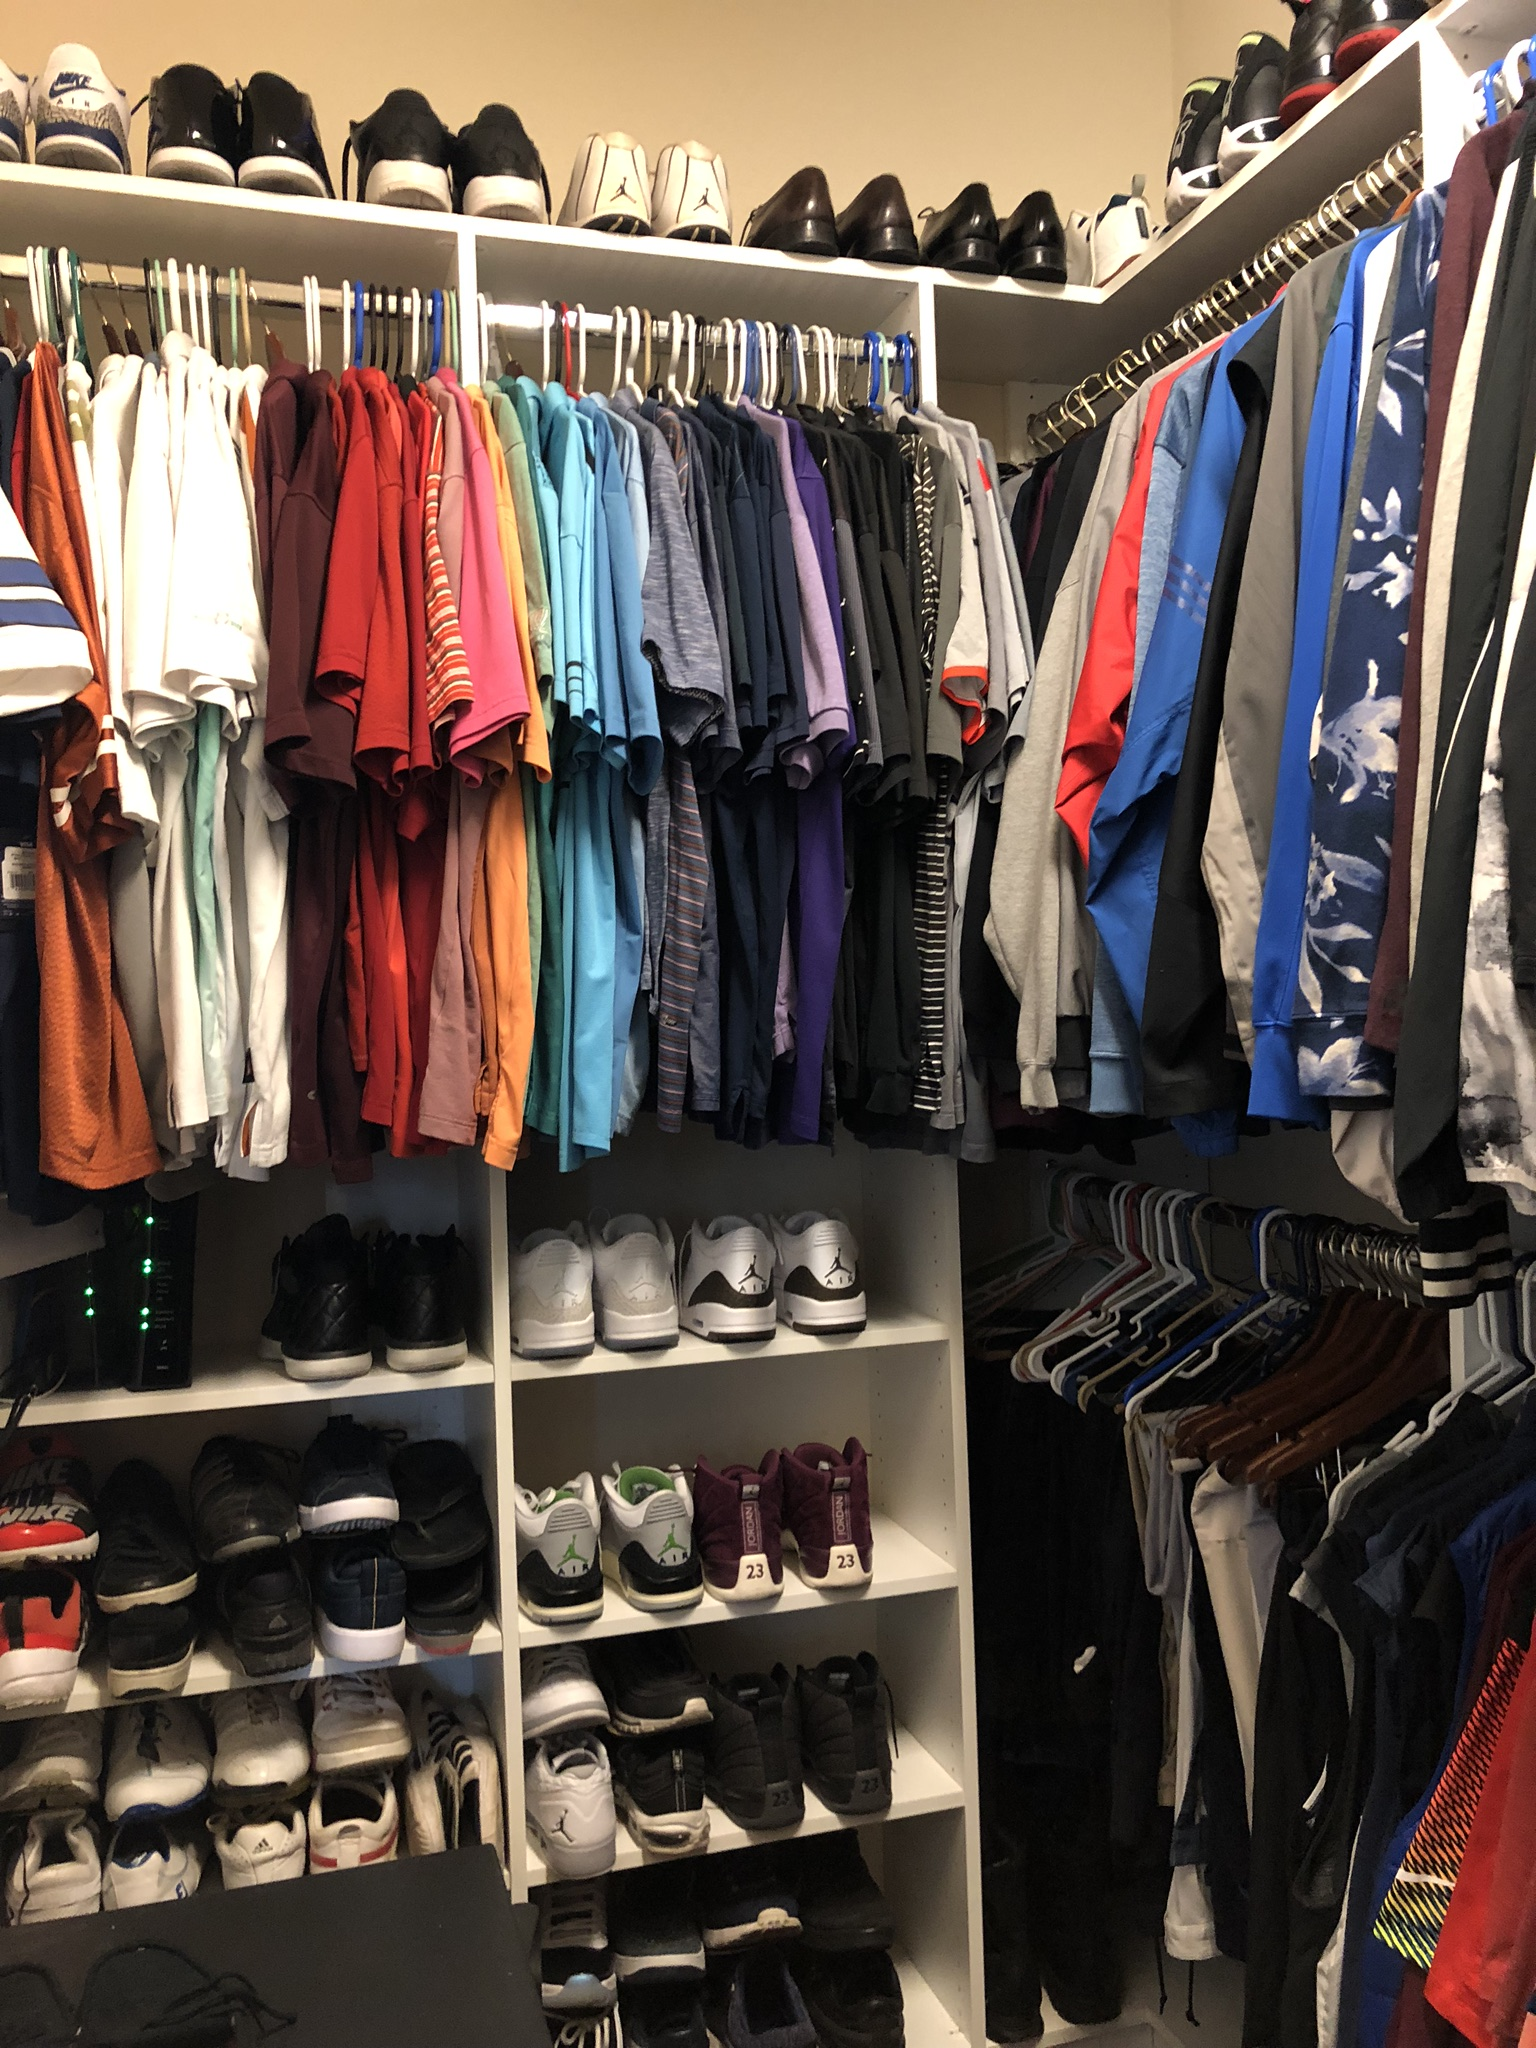 AFTER - With a little bit of purging and a lot of rearranging, this closet is now fun and functional - and a great place to show off his sneaker collection!